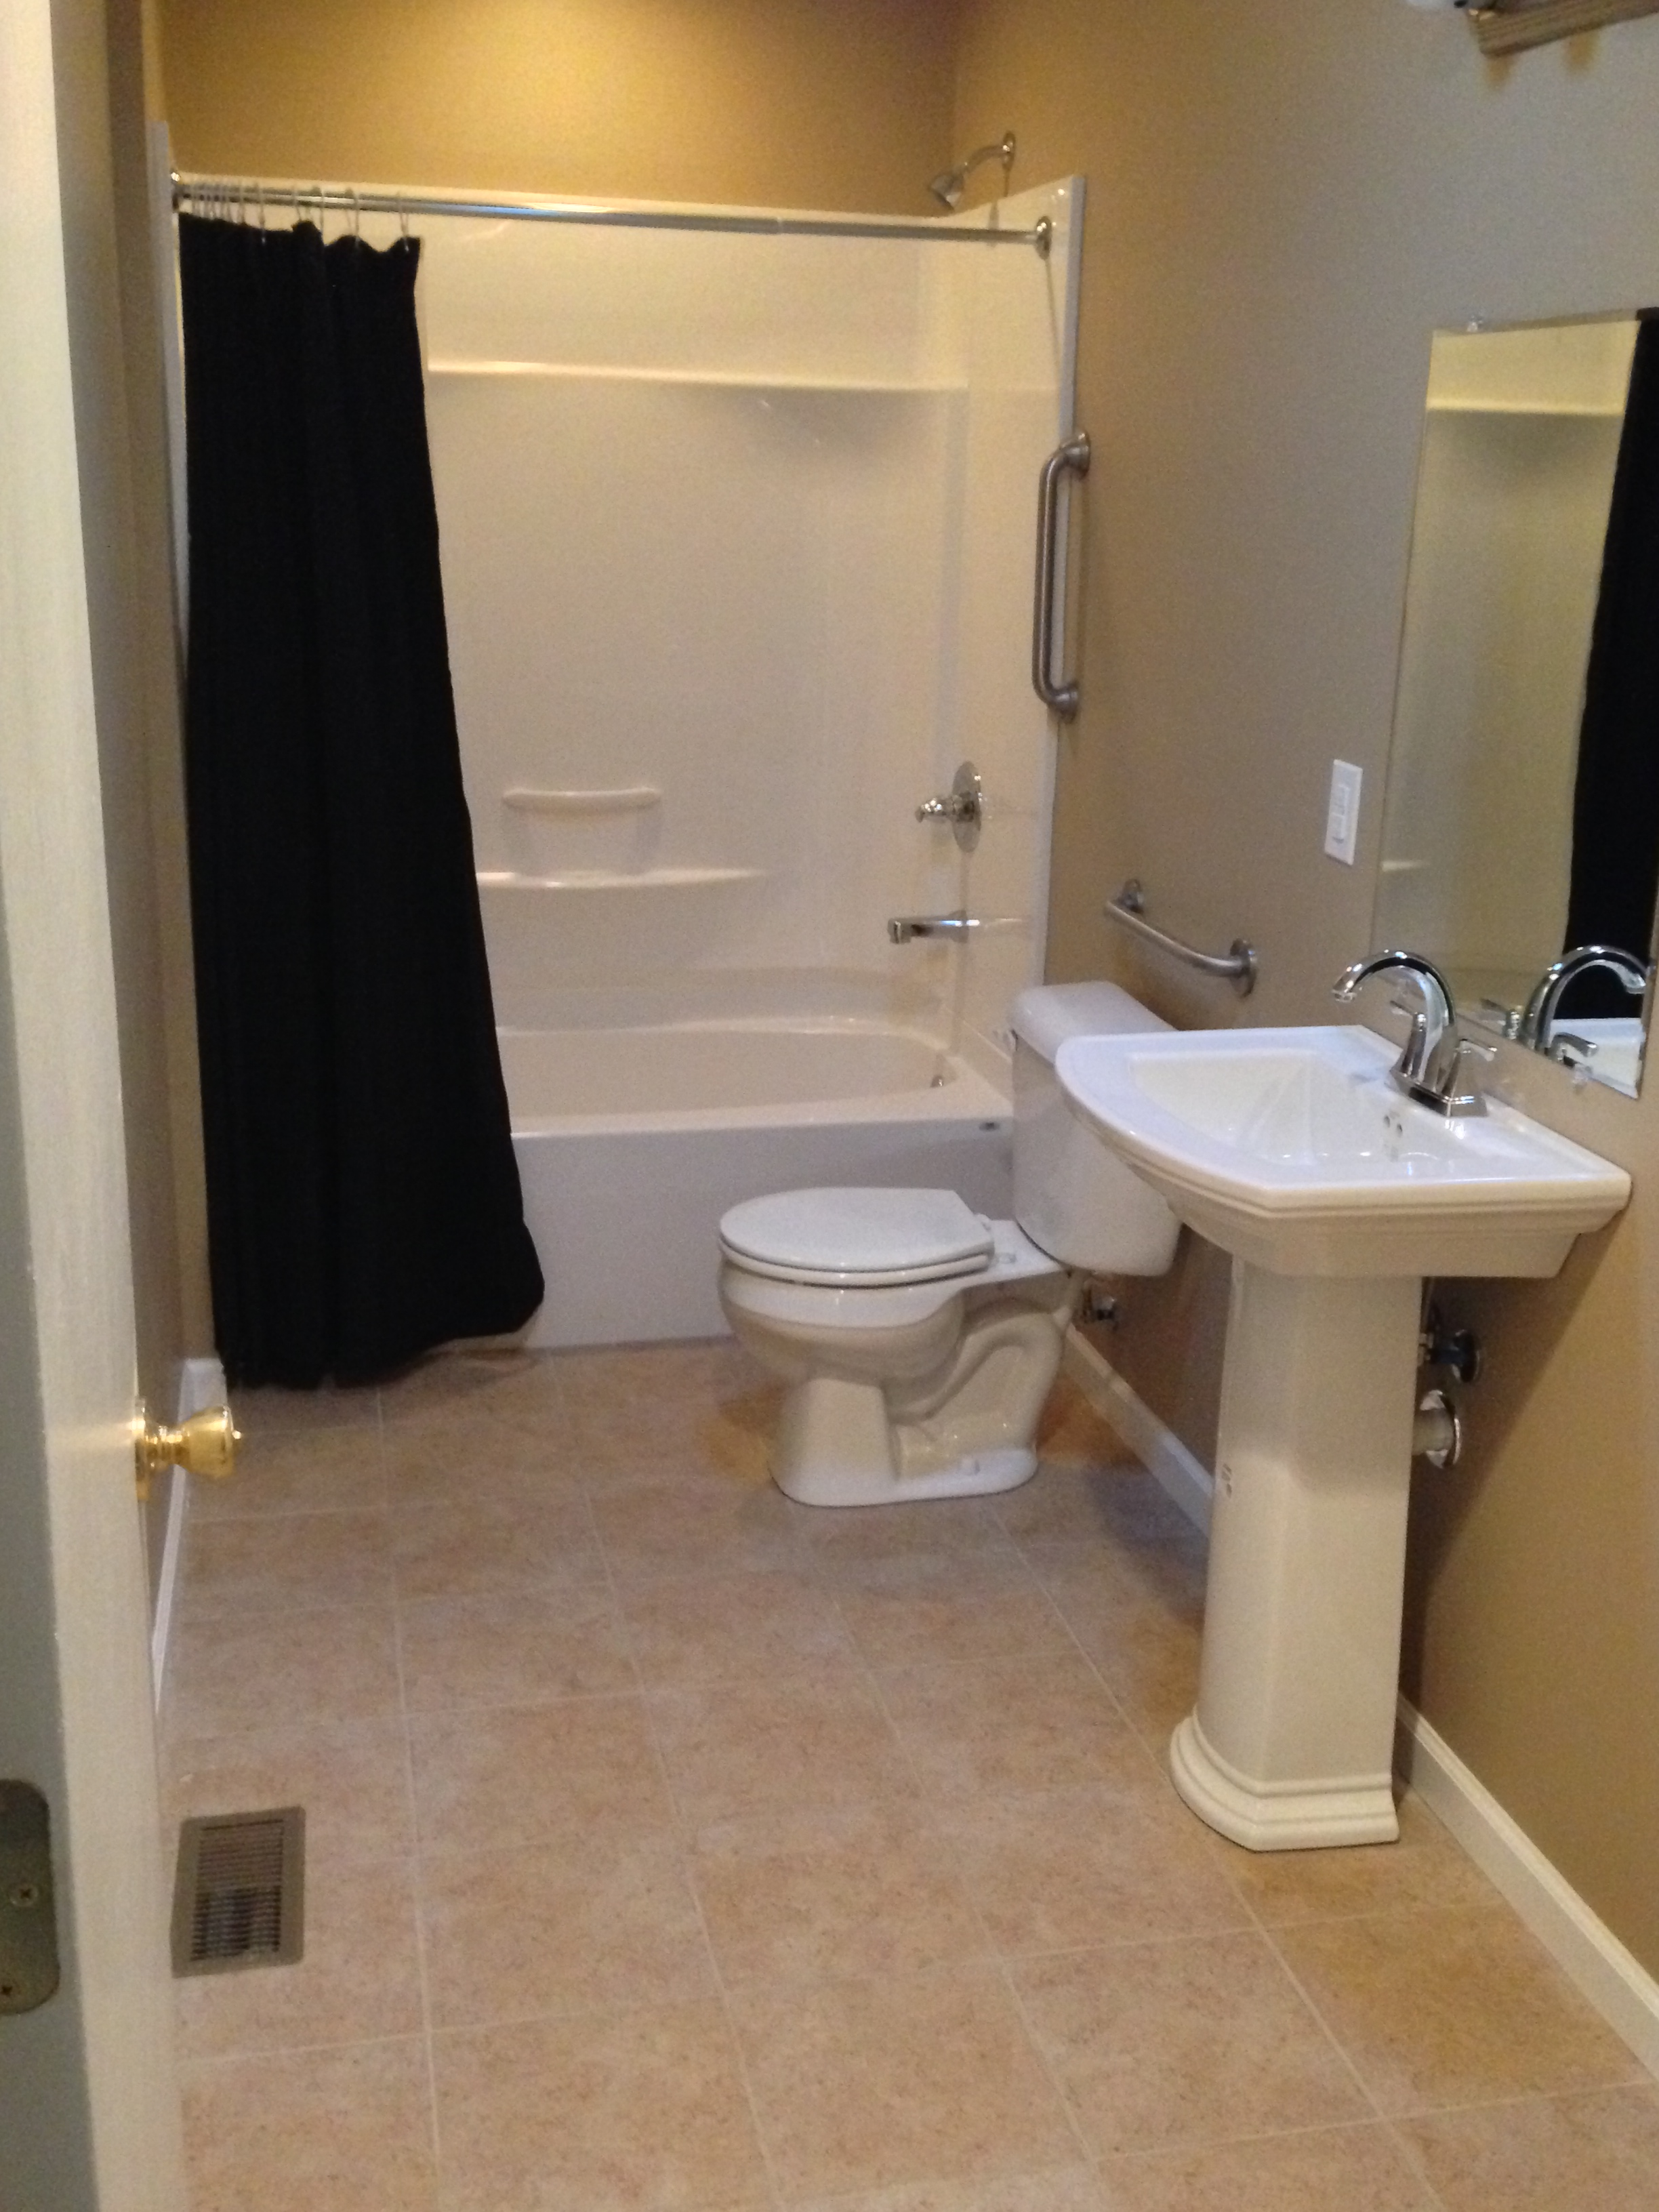 Bathroom Remodeling AllPro Of Kentucky - Bathroom remodeling lexington ky